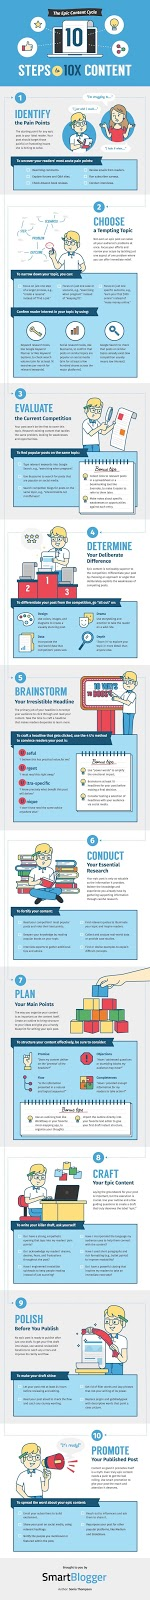 10 ways to improve content #infographic